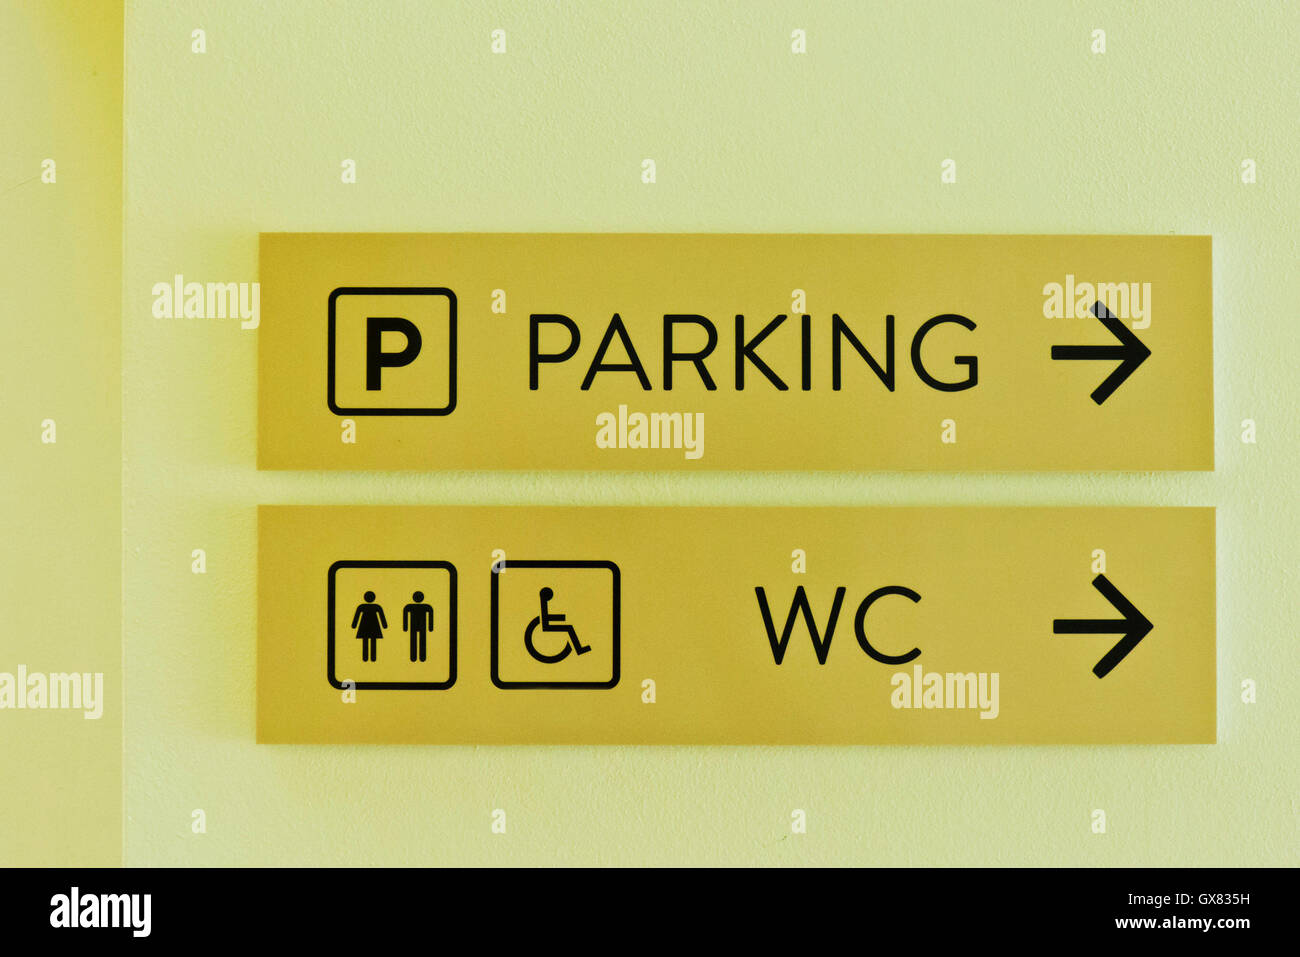 parking and WC indications - Stock Image